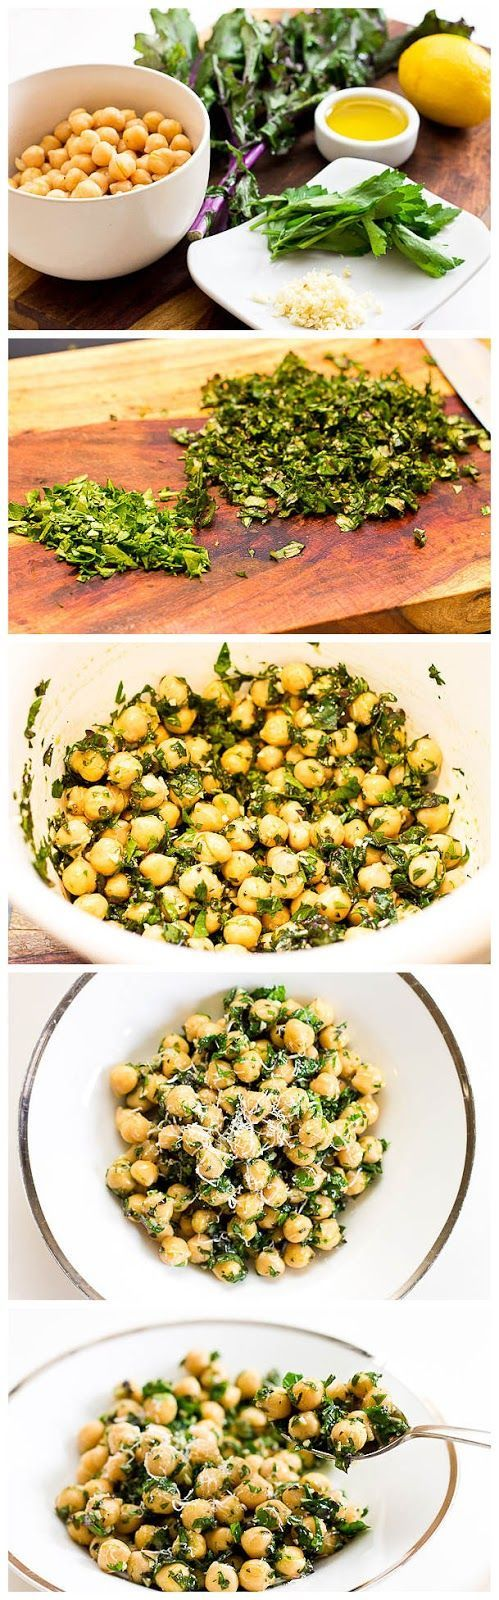 17 Best images about Healthy Recipes on Pinterest | Bean ...